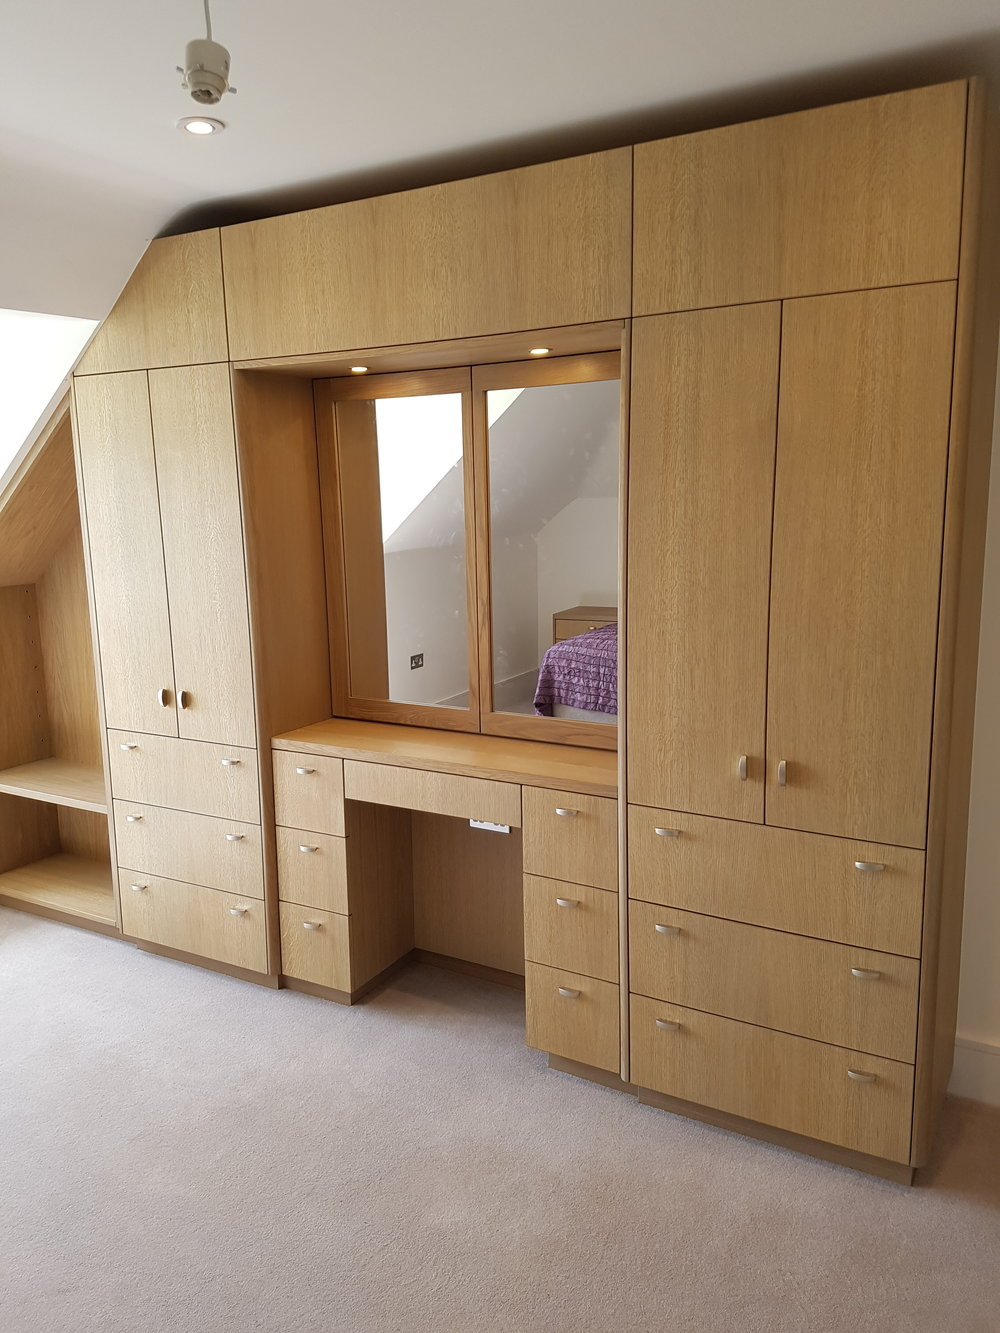 Oak bedroom furniture.jpg